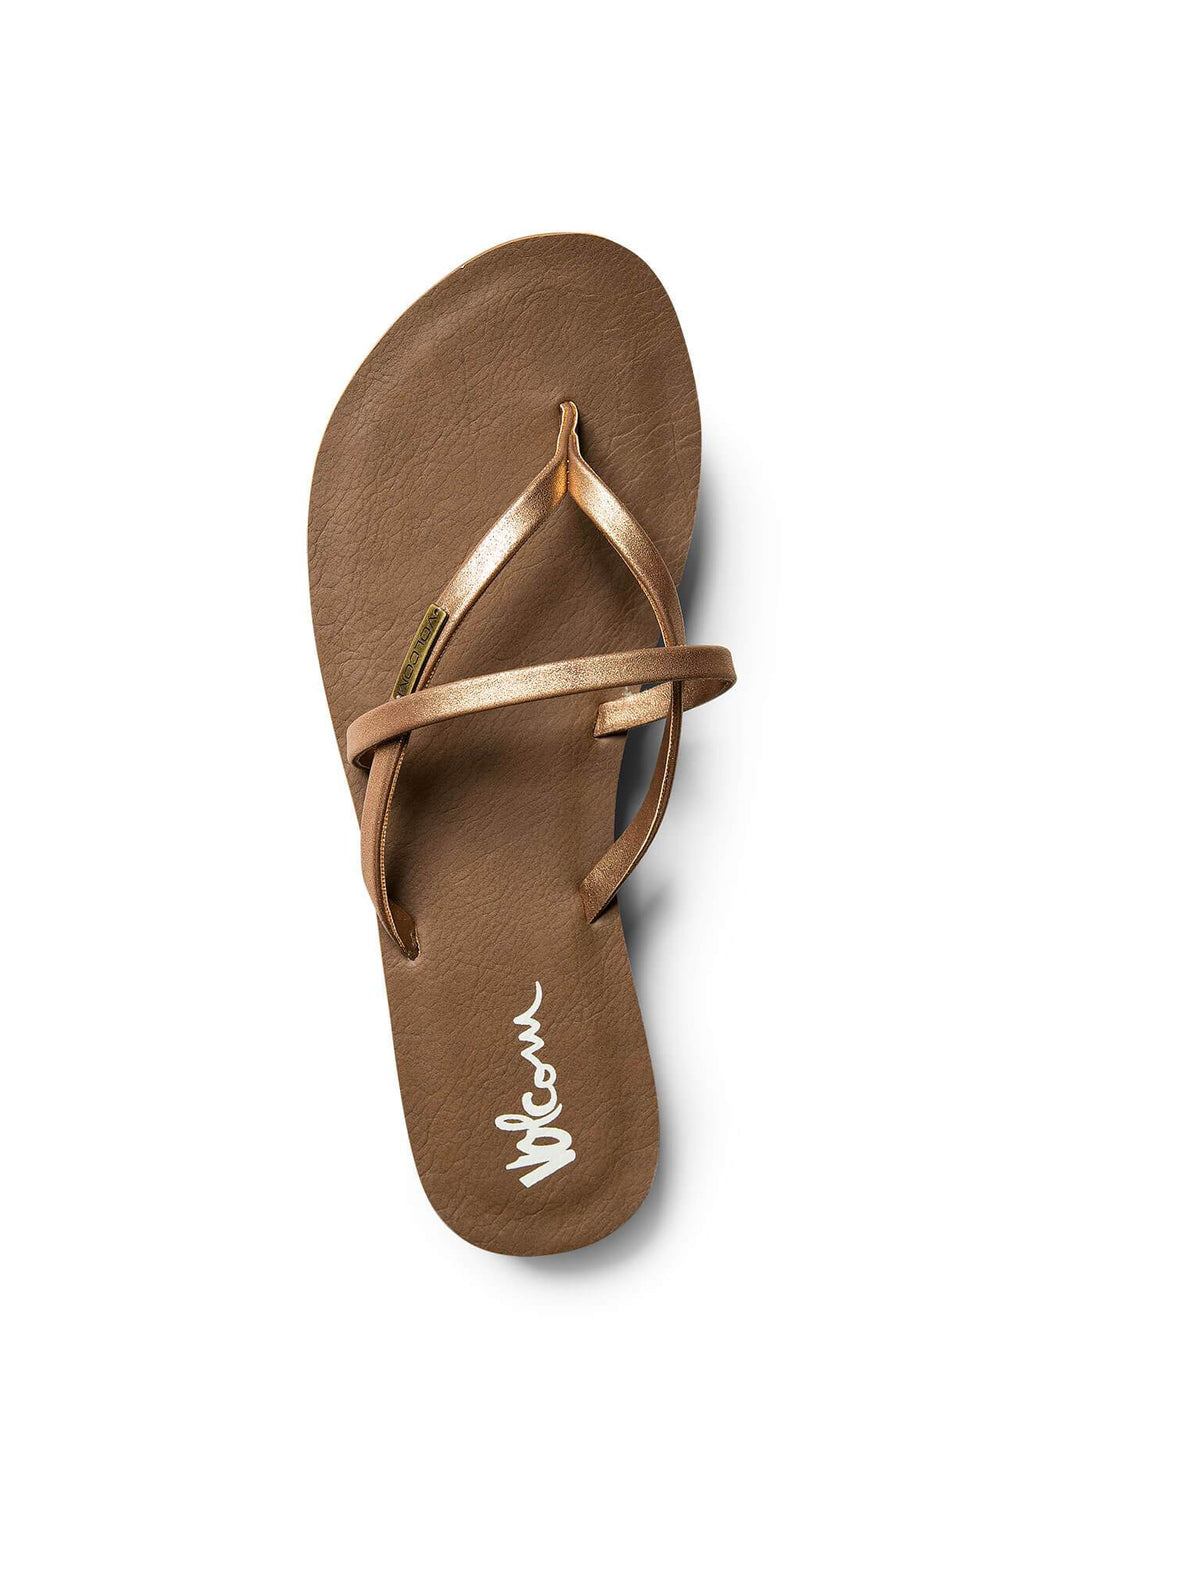 All Night Long Sandals In Bronze, Alternate View